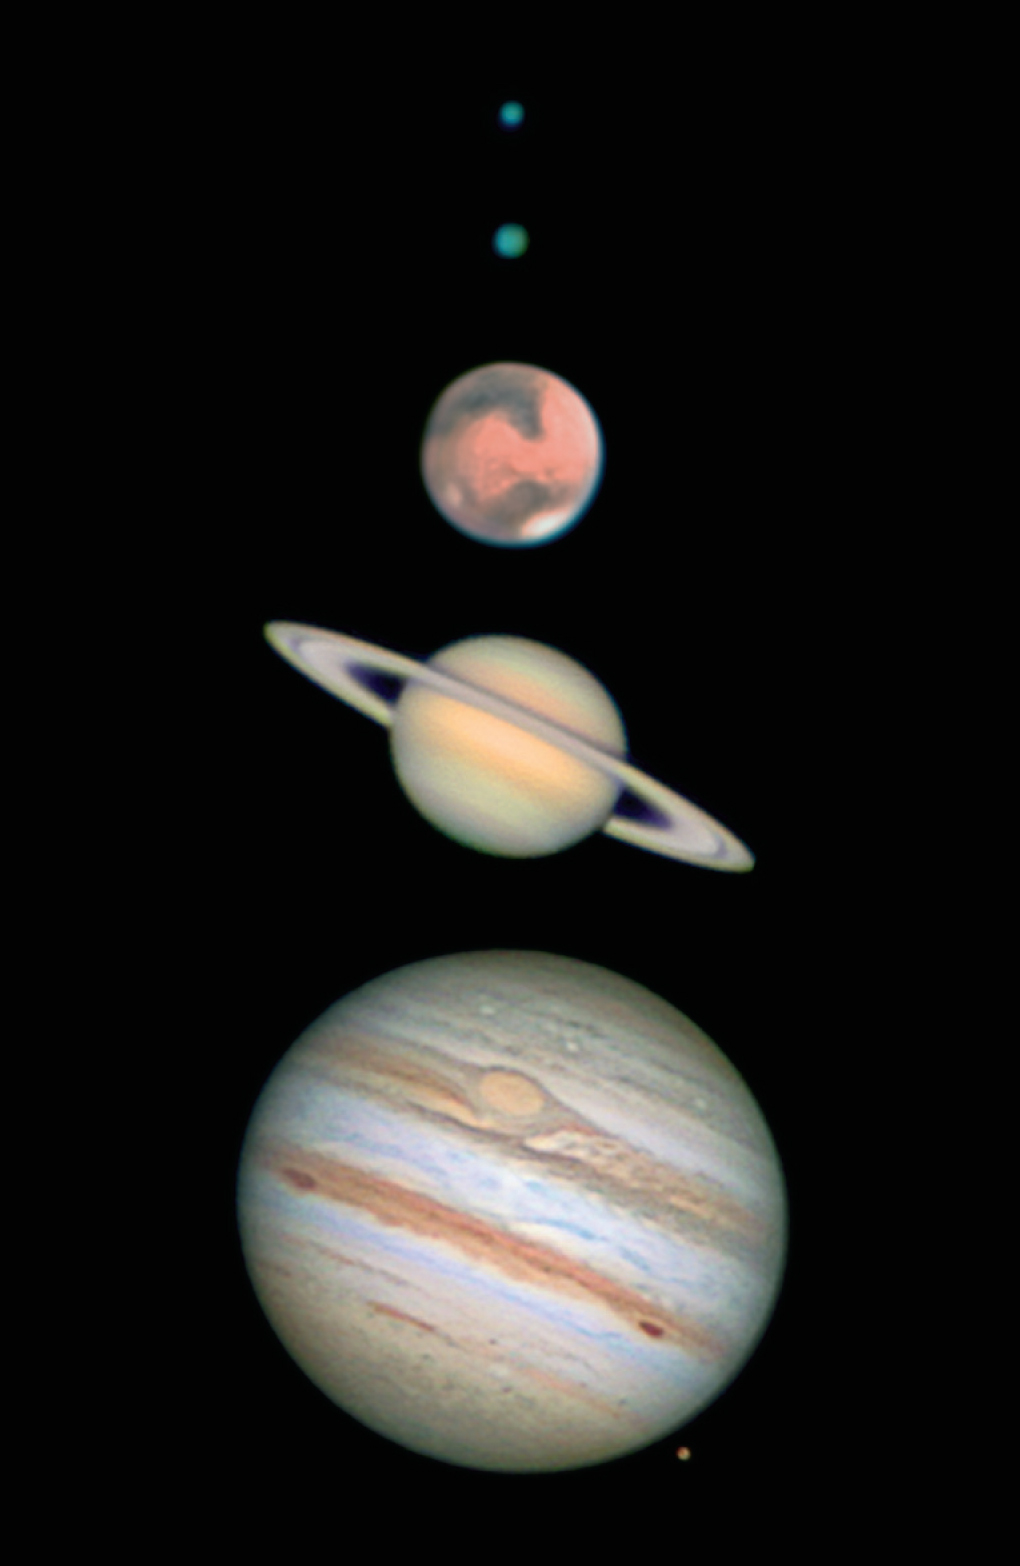 Planetary Imaging with Your DSLR Camera - Sky & Telescope